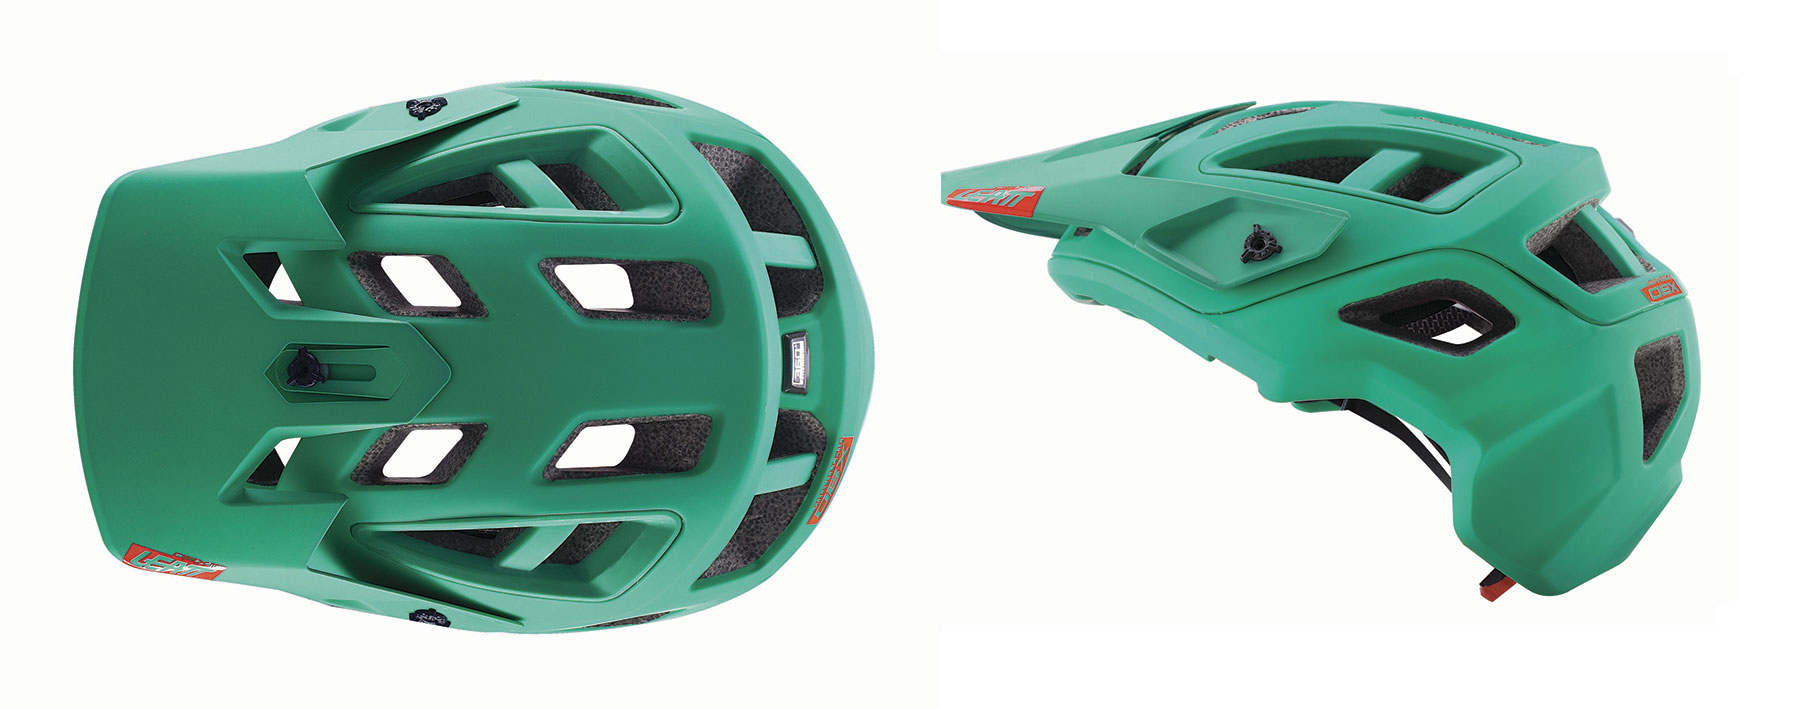 Casco  casco Leatt DBX 3.0 AllMountain - Verde